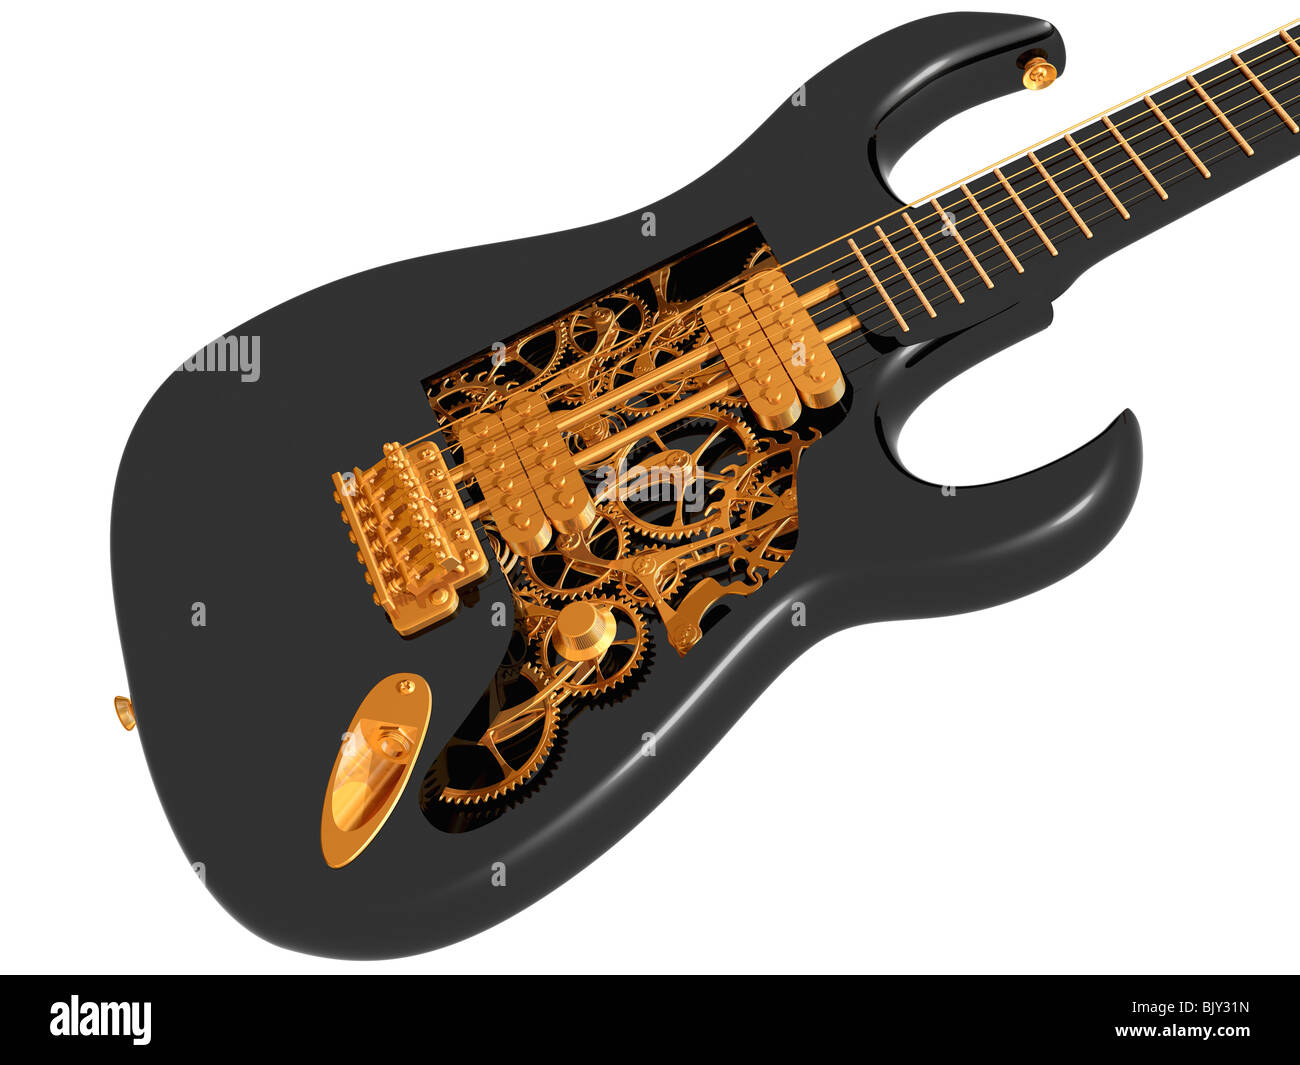 Original customized guitar with cogs and gears - Stock Image